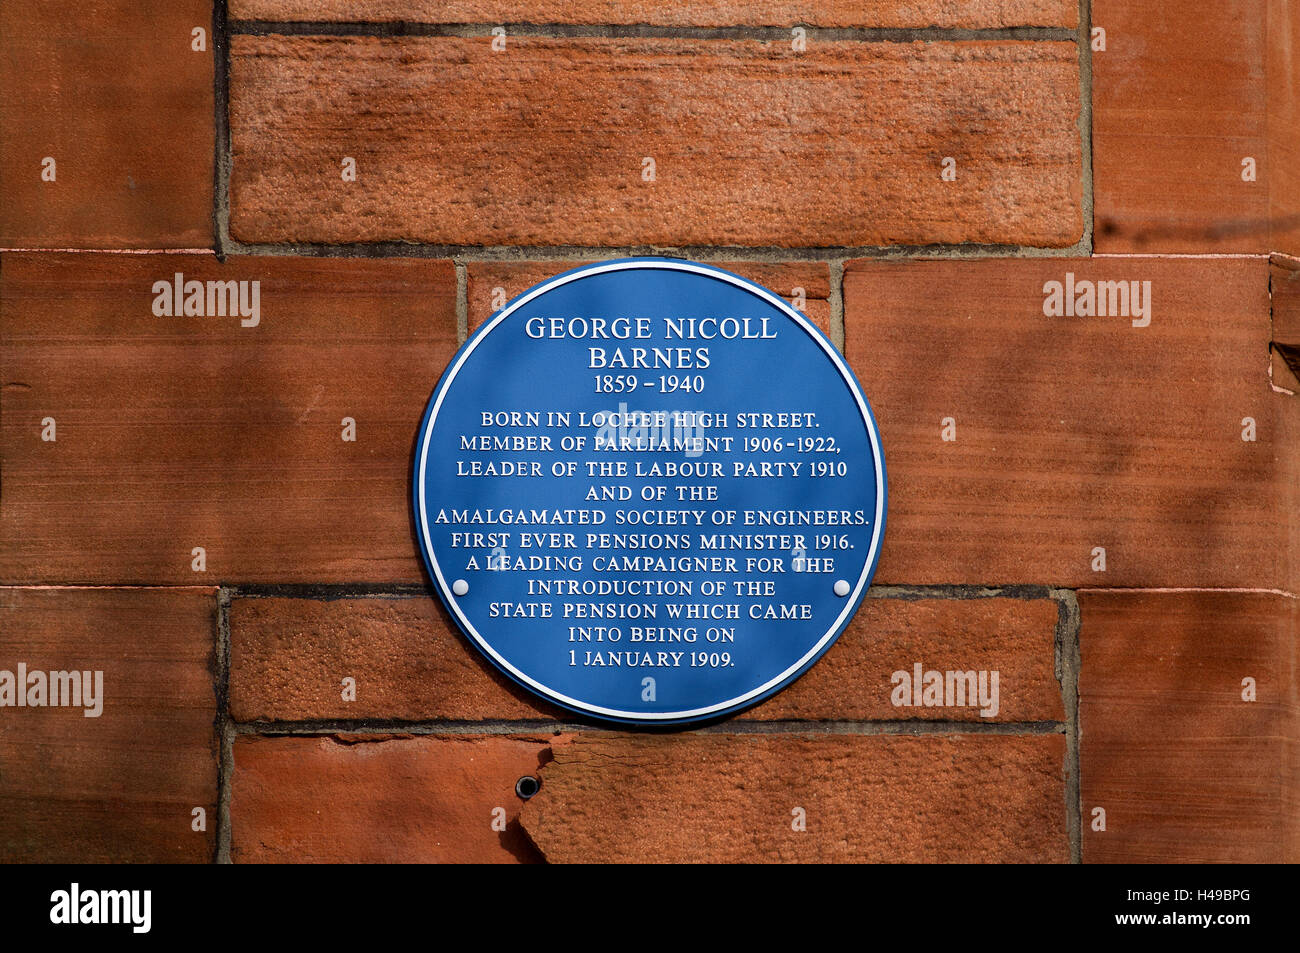 Plaque of politician George Nicoll Barnes on the wall of the 1894 Lochee Public Library and Reading-Room in Dundee.UK - Stock Image